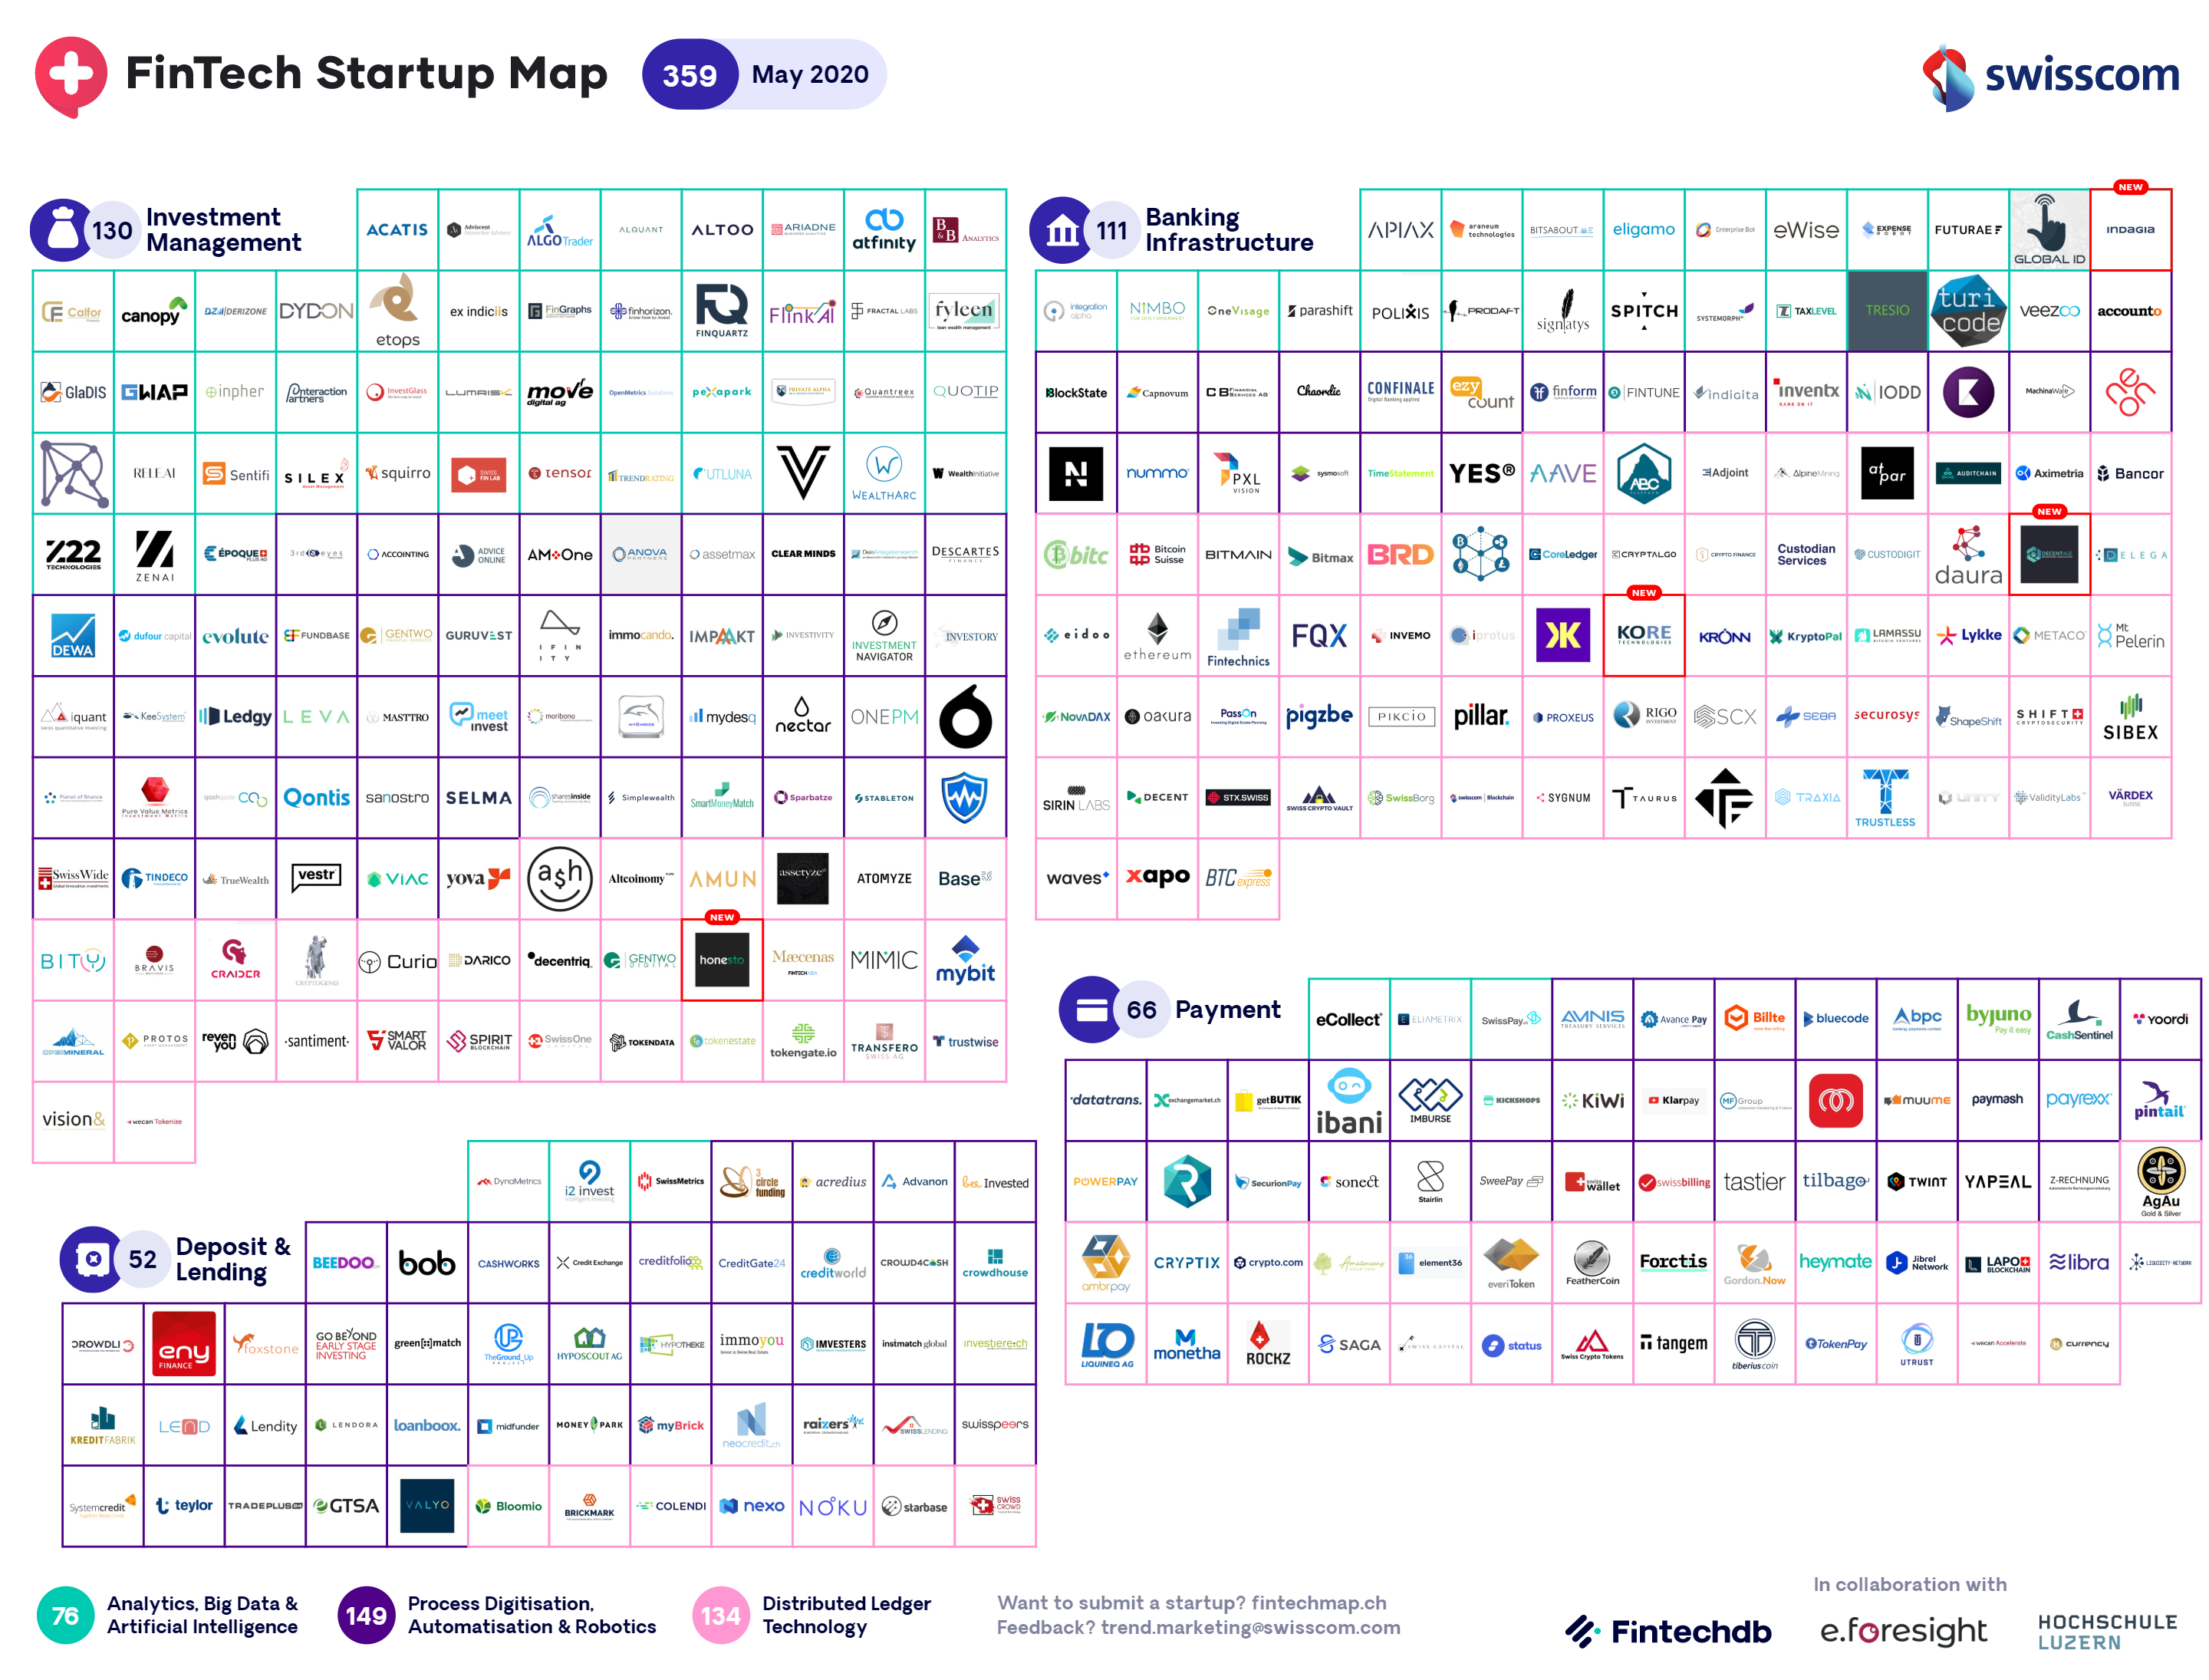 Swiss Fintech Startup Map May